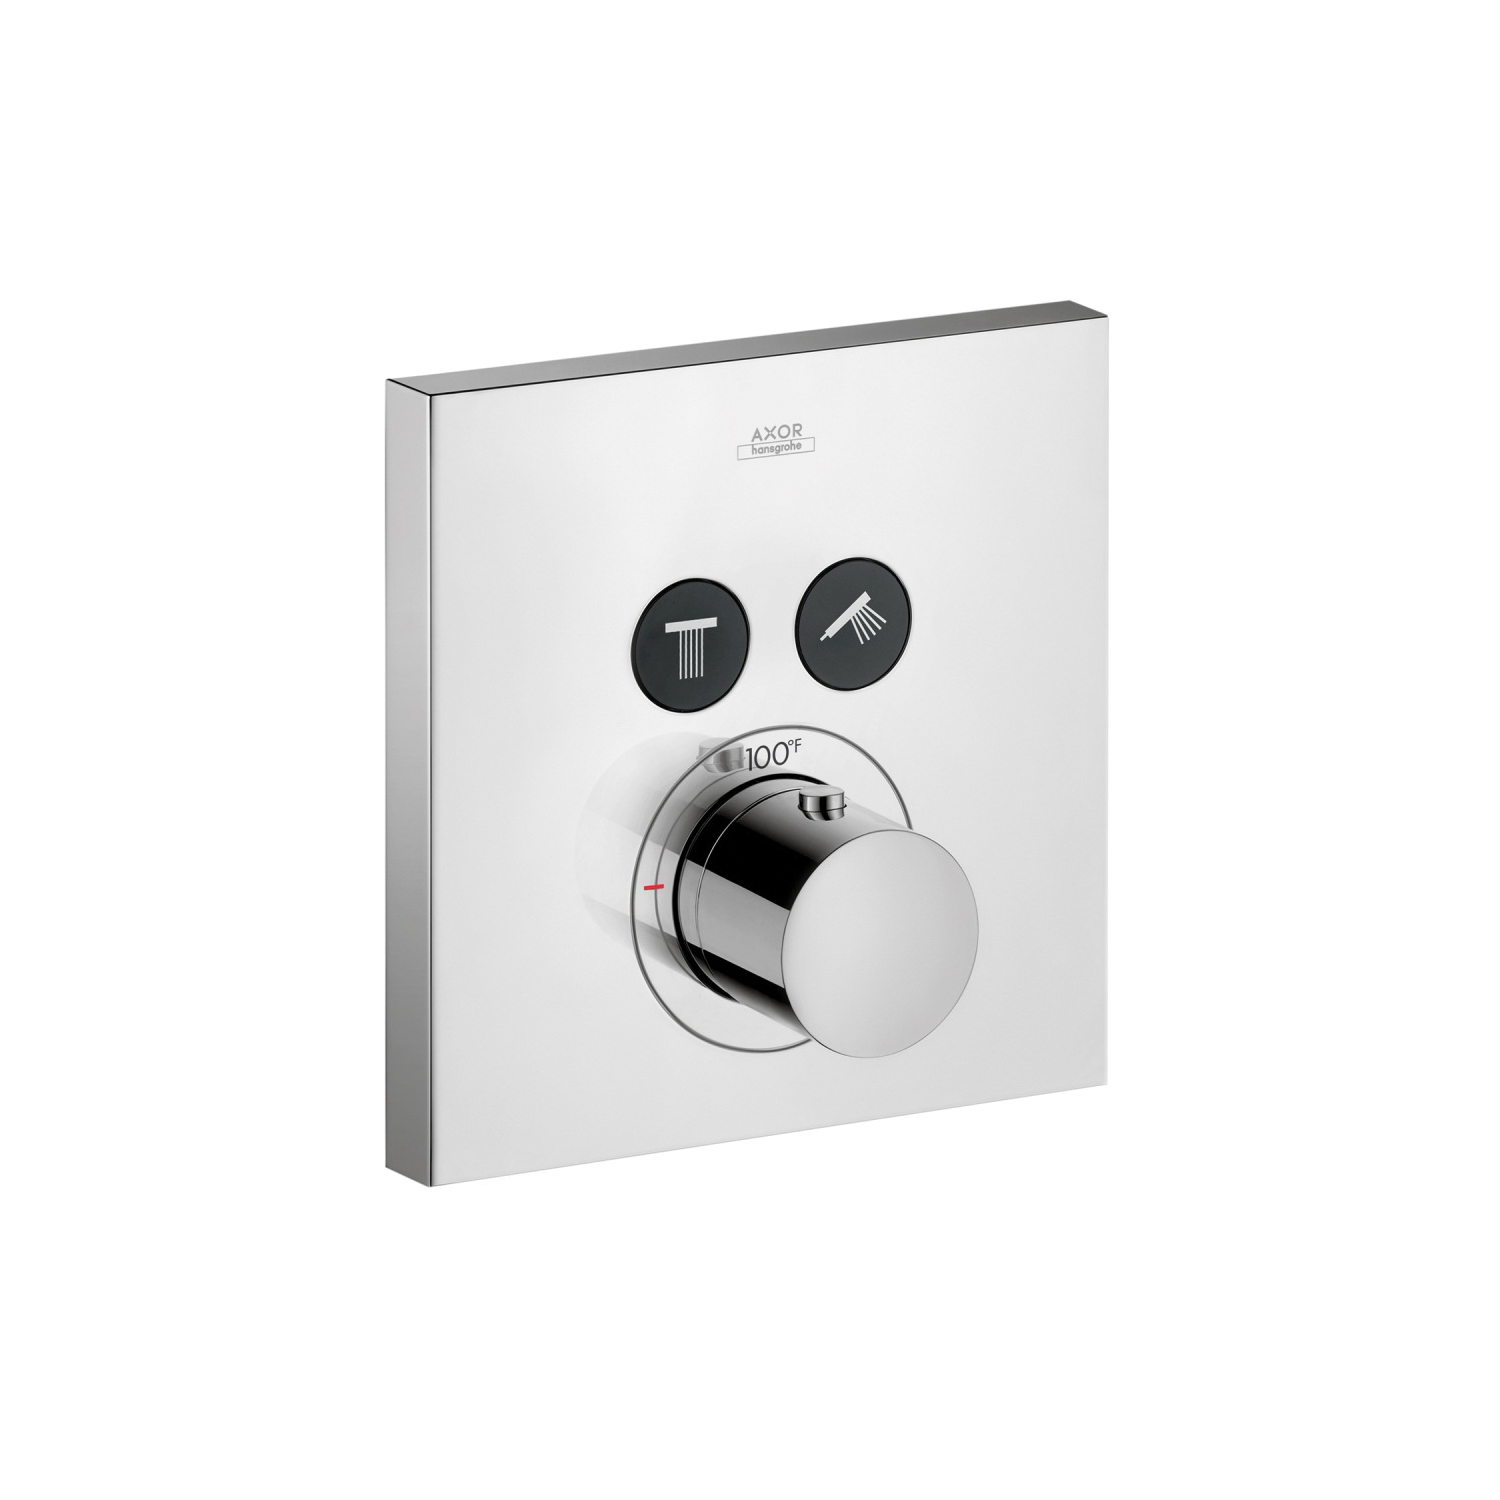 Hansgrohe 36715001 Axor ShowerSelect Square Thermostatic Trim, Hand Shower Yes/No: No, Chrome Plated